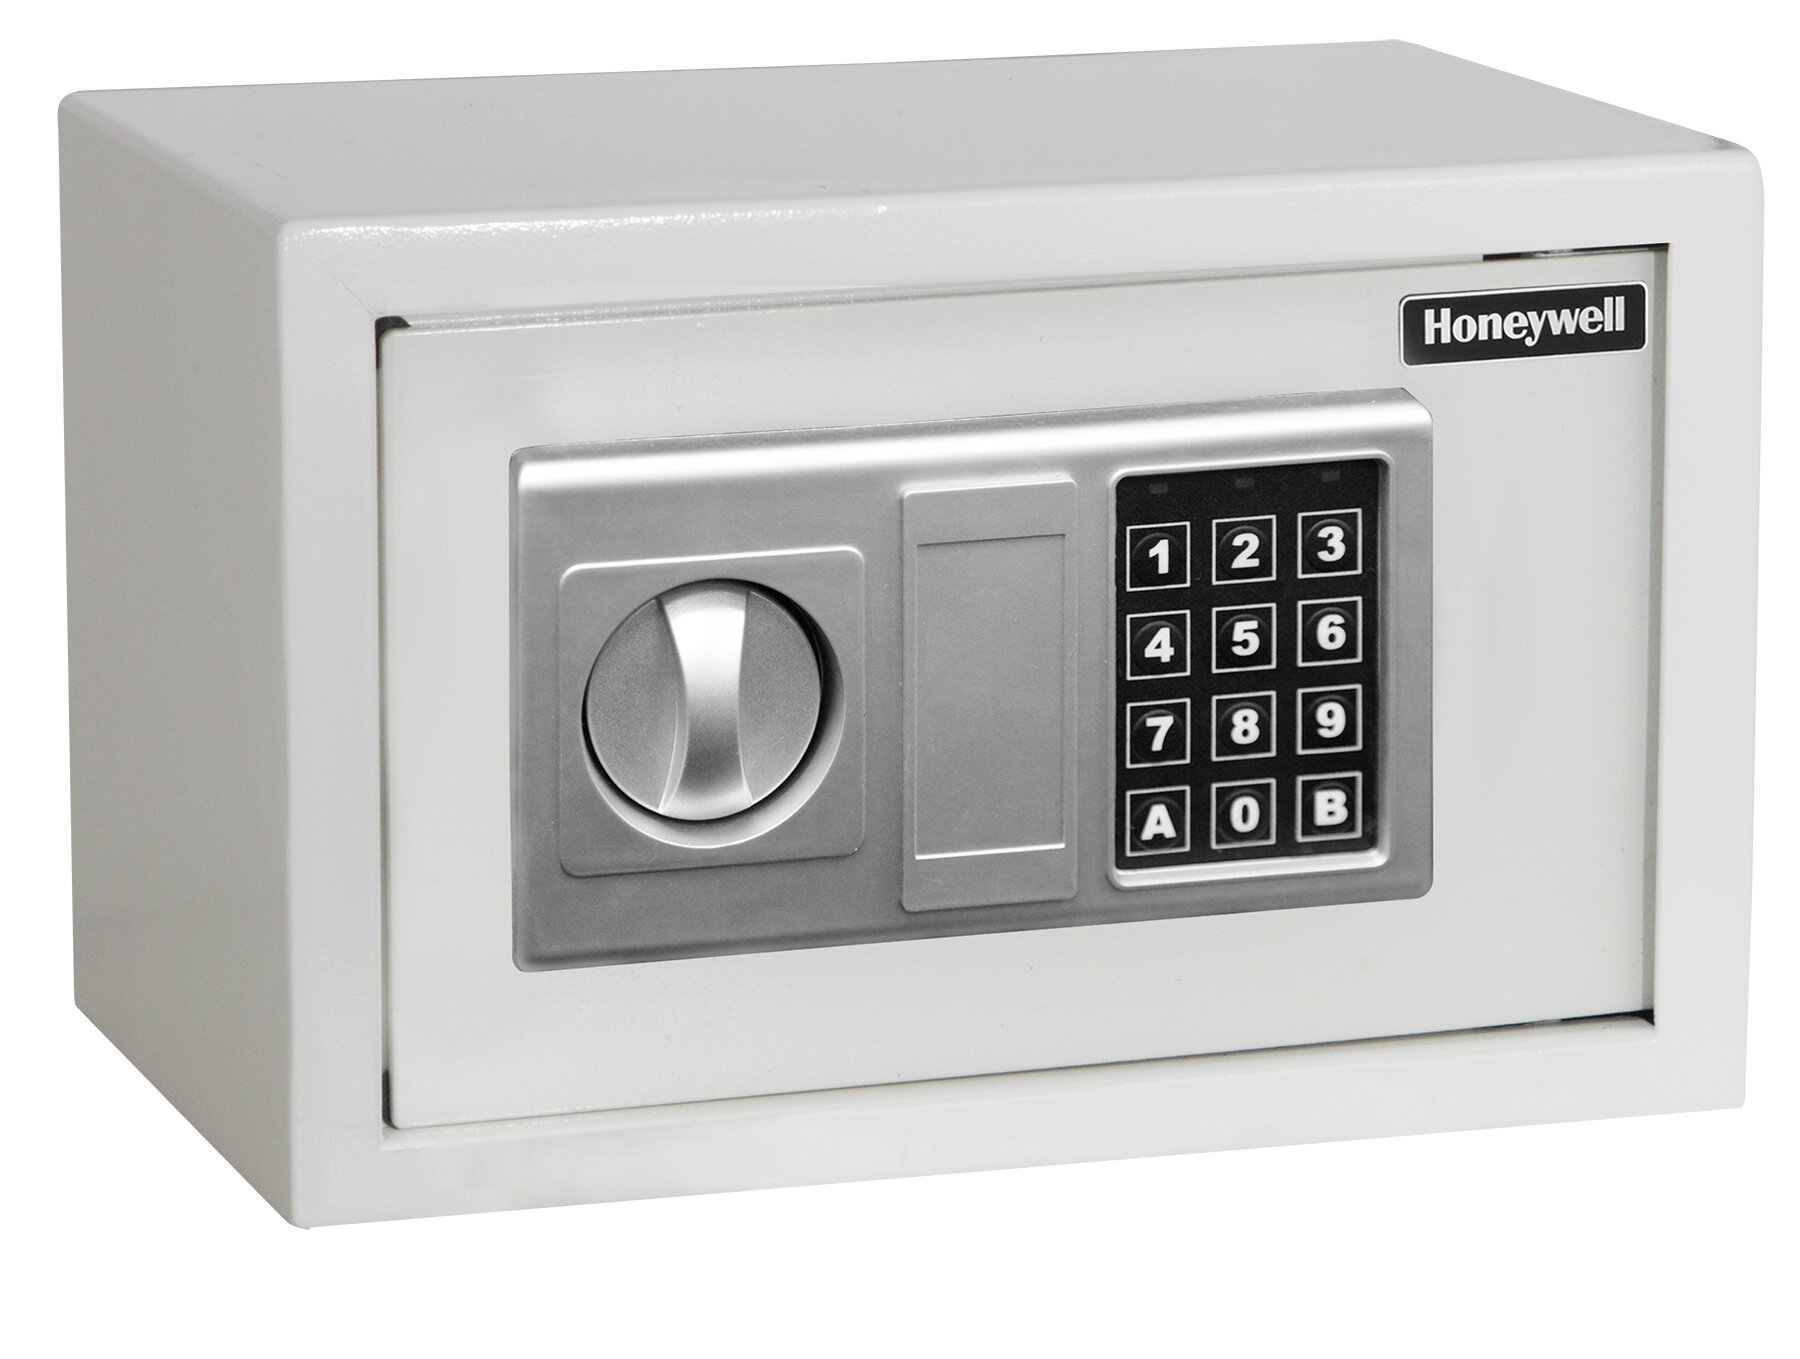 Honeywell Steel Security Safe 28 CuFt